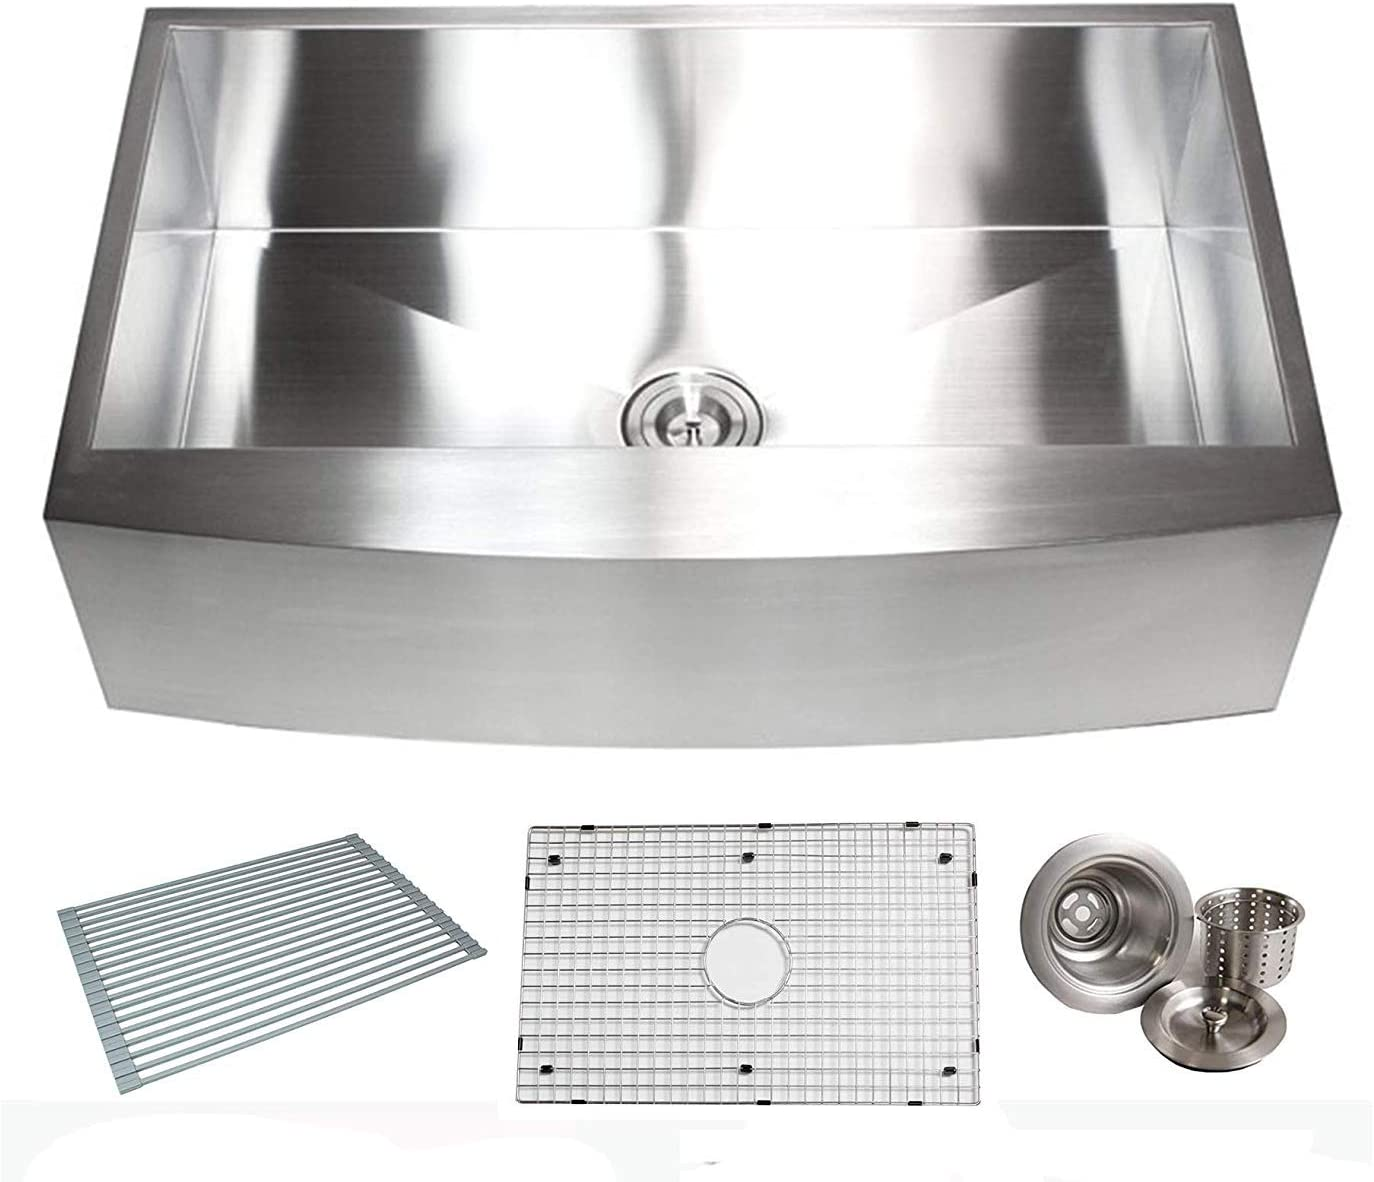 36 Inch Zero Radius Design 16 Gauge Single Bowl Stainless Steel Curve Farmhouse Apron Kitchen Sink Premium Package 36 INCH KKR-EFS3621